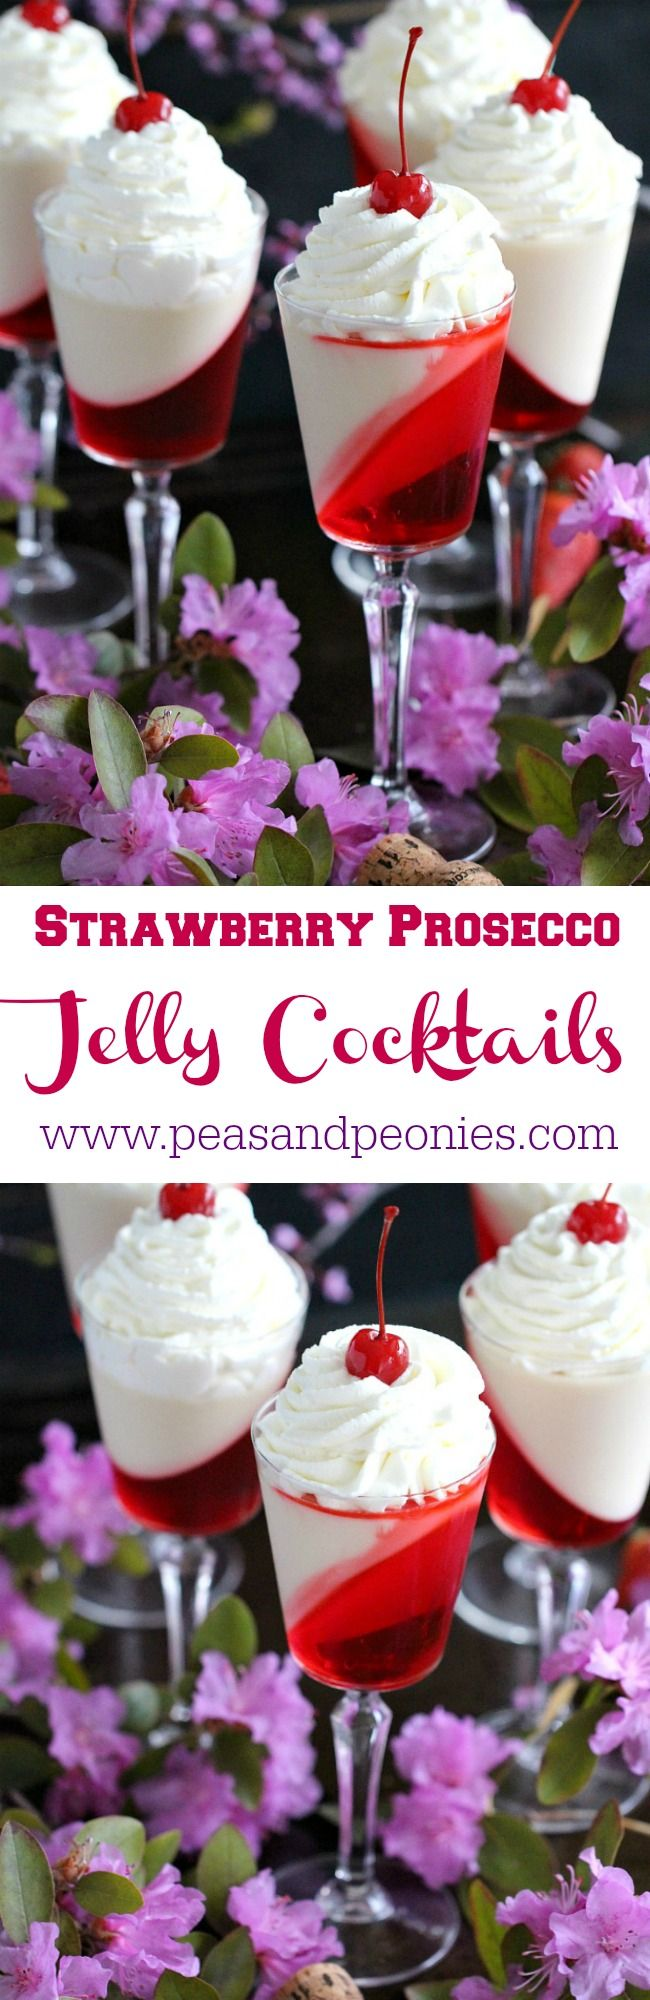 Strawberry Prosecco Jelly Cocktails are a combination of sweet and fragrant strawberry infused Prosecco jelly and creamy vanilla condensed milk jelly. @vovetiprosecco #VOVETI #CleverGirls